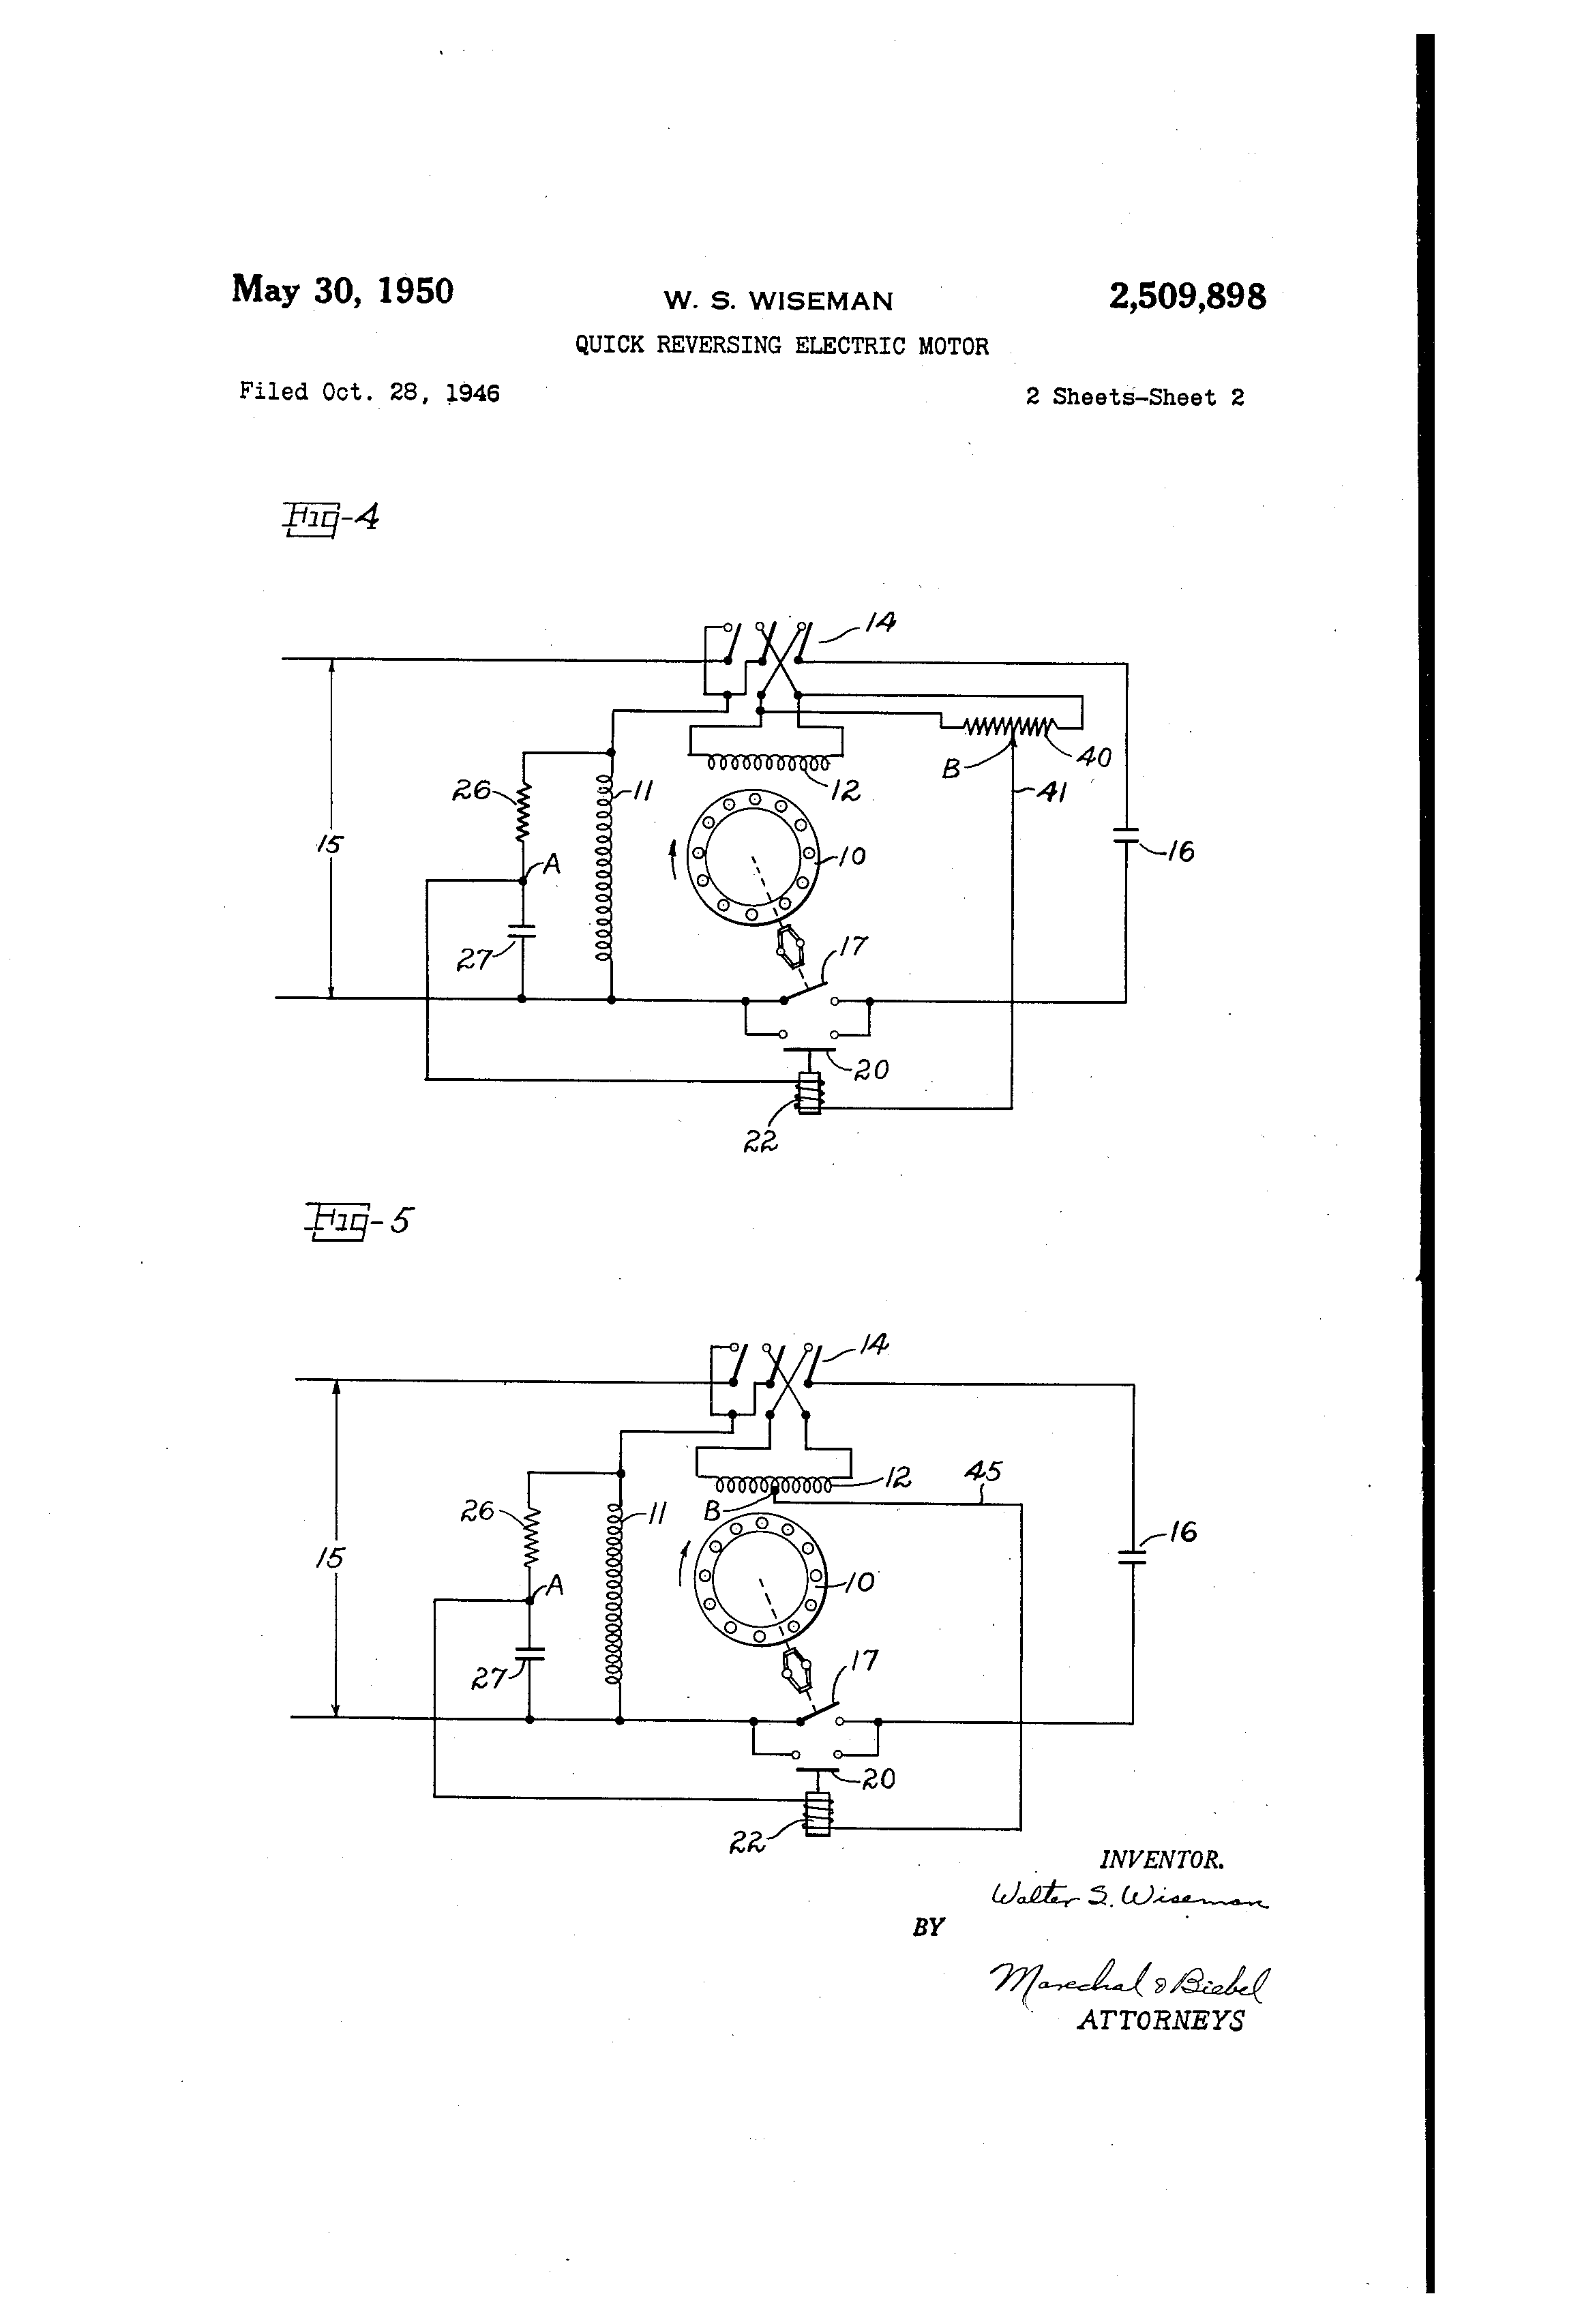 westinghouse electric motor wiring diagram westinghouse patent us2509898 quick reversing electric motor google patents on westinghouse electric motor wiring diagram